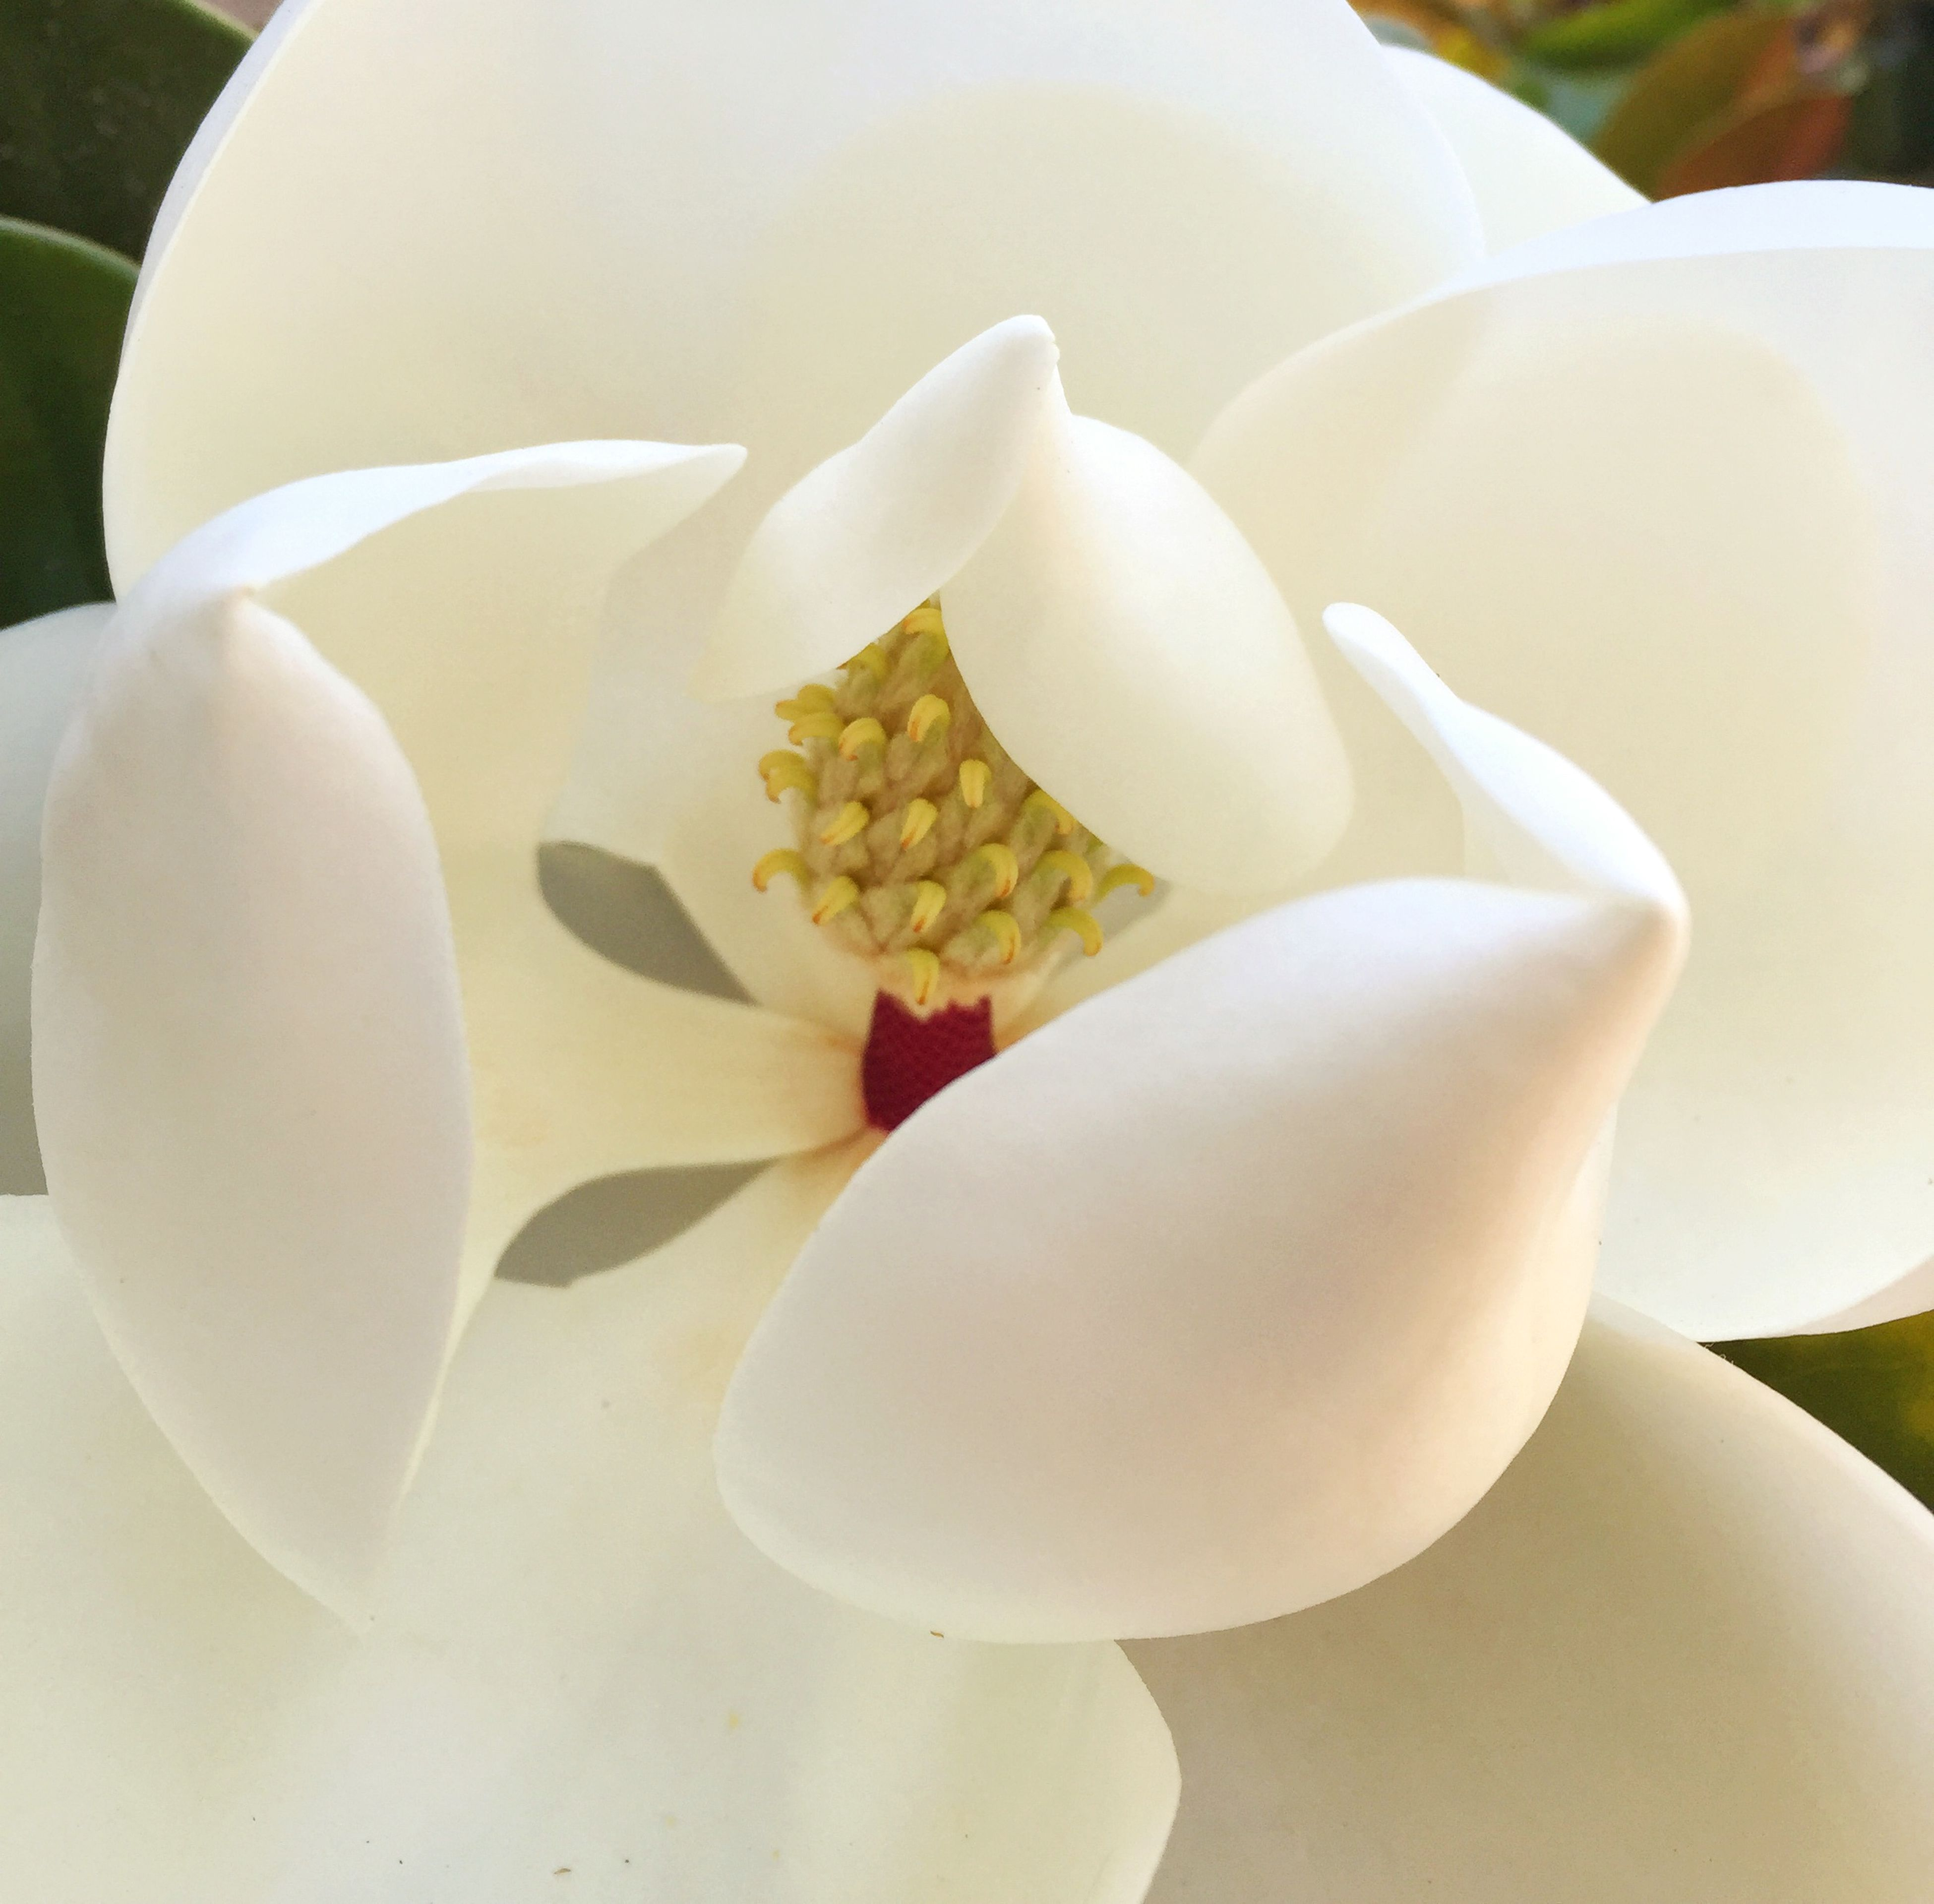 flower, freshness, fragility, petal, white color, close-up, flower head, white, macro, stamen, blossom, beauty in nature, simplicity, springtime, extreme close-up, single flower, backgrounds, botany, magnolia, in bloom, exoticism, softness, growth, nature, full frame, pollen, pistil, no people